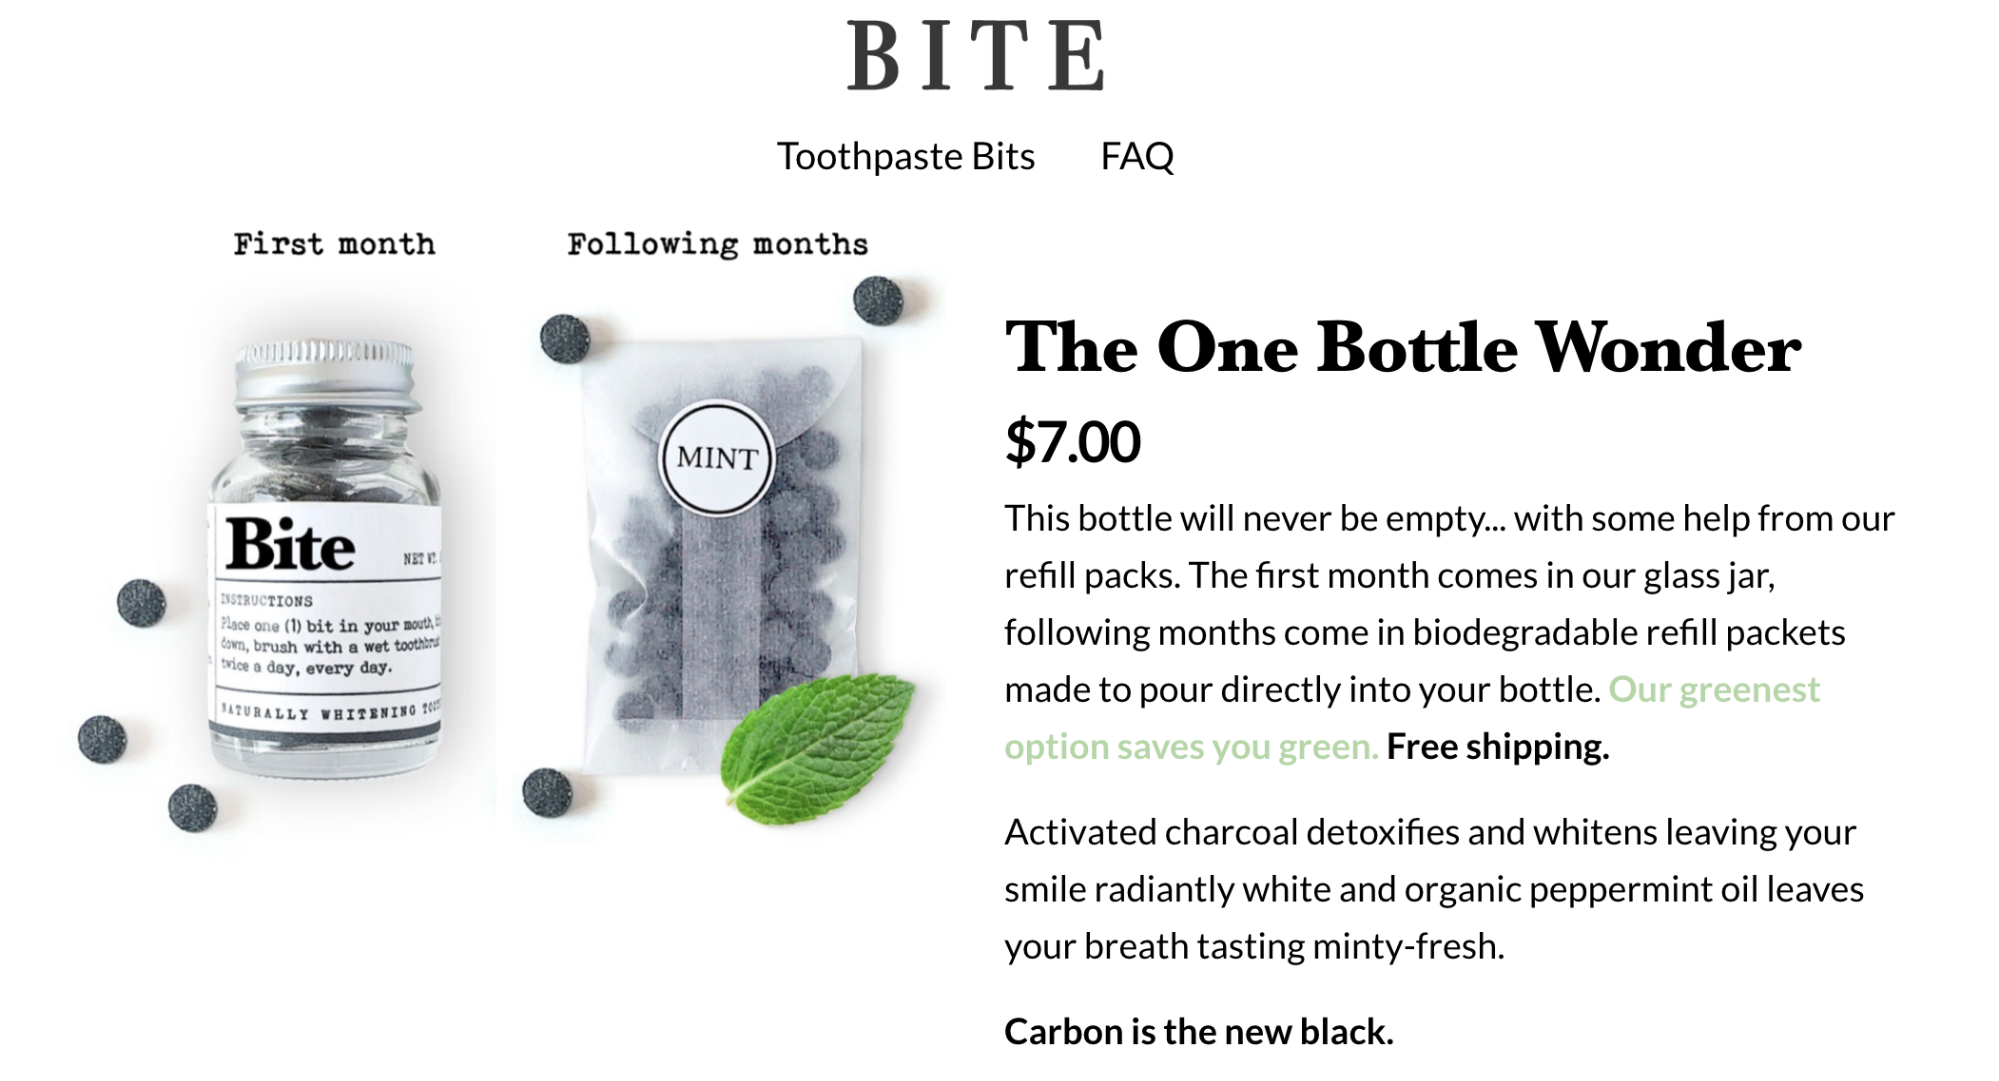 Screenshot showing a product page on Bite